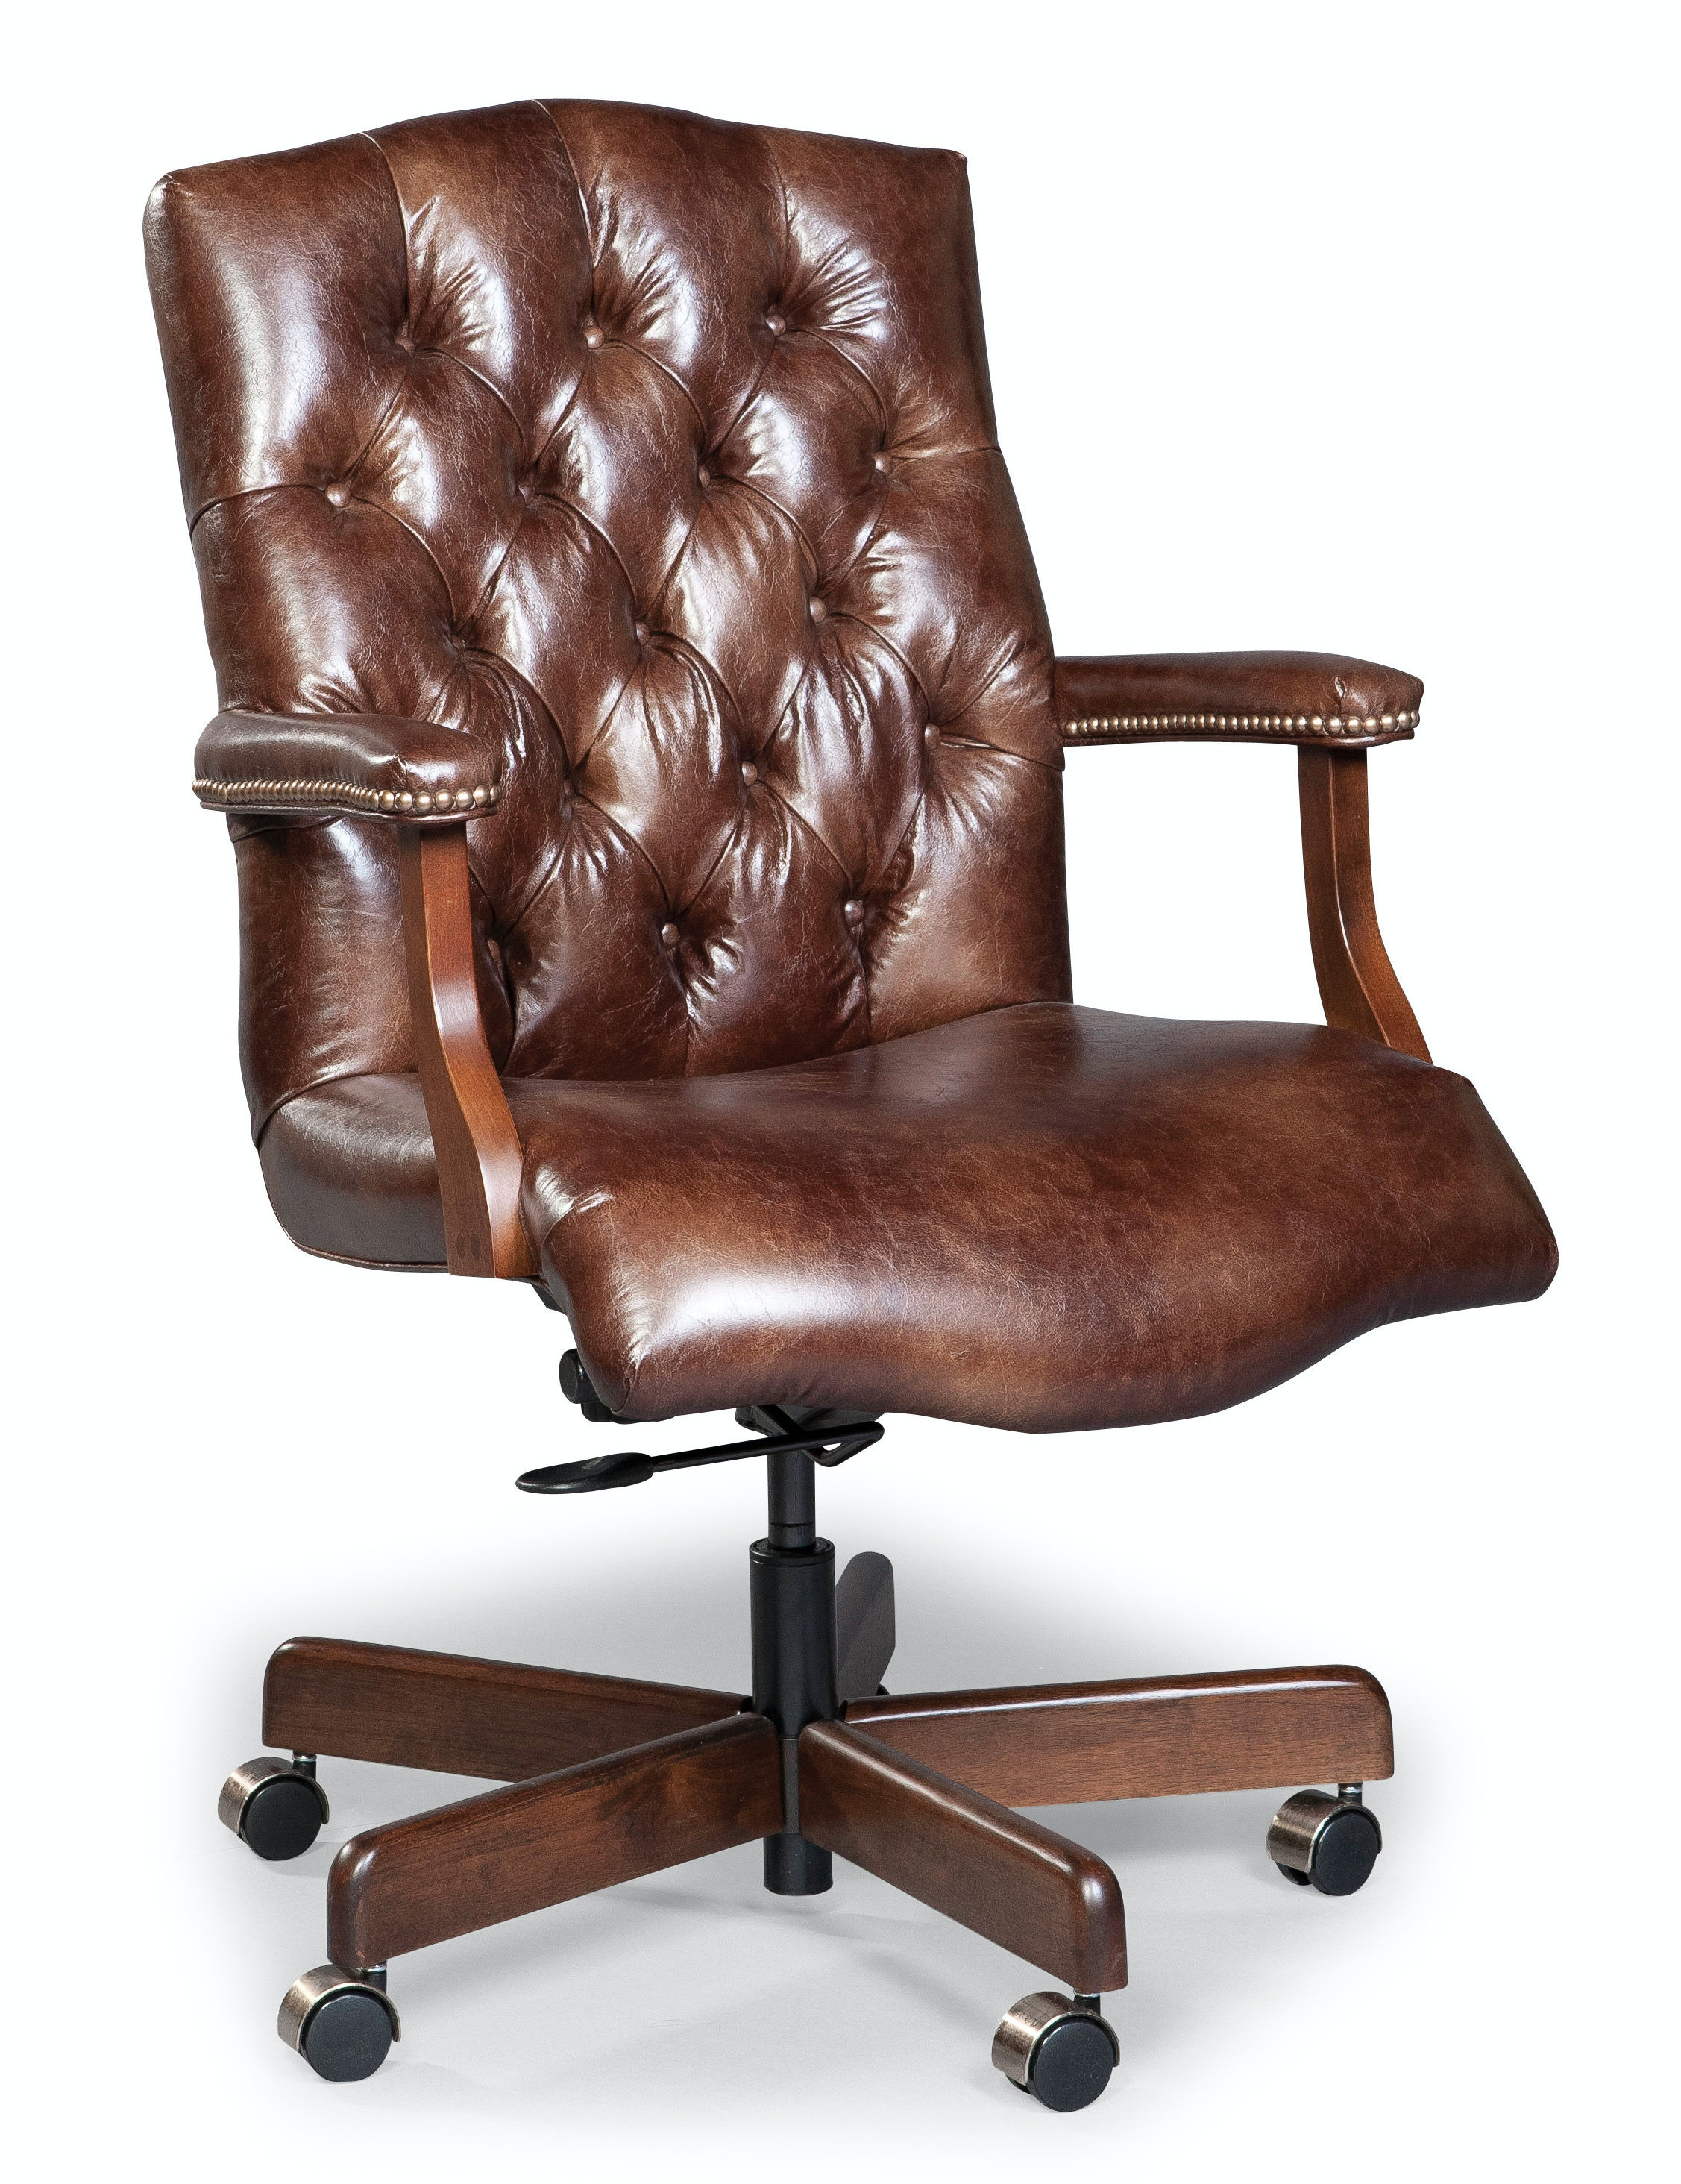 Fairfield Chair Company Stanford (Essentials) Office Swivel E059 35